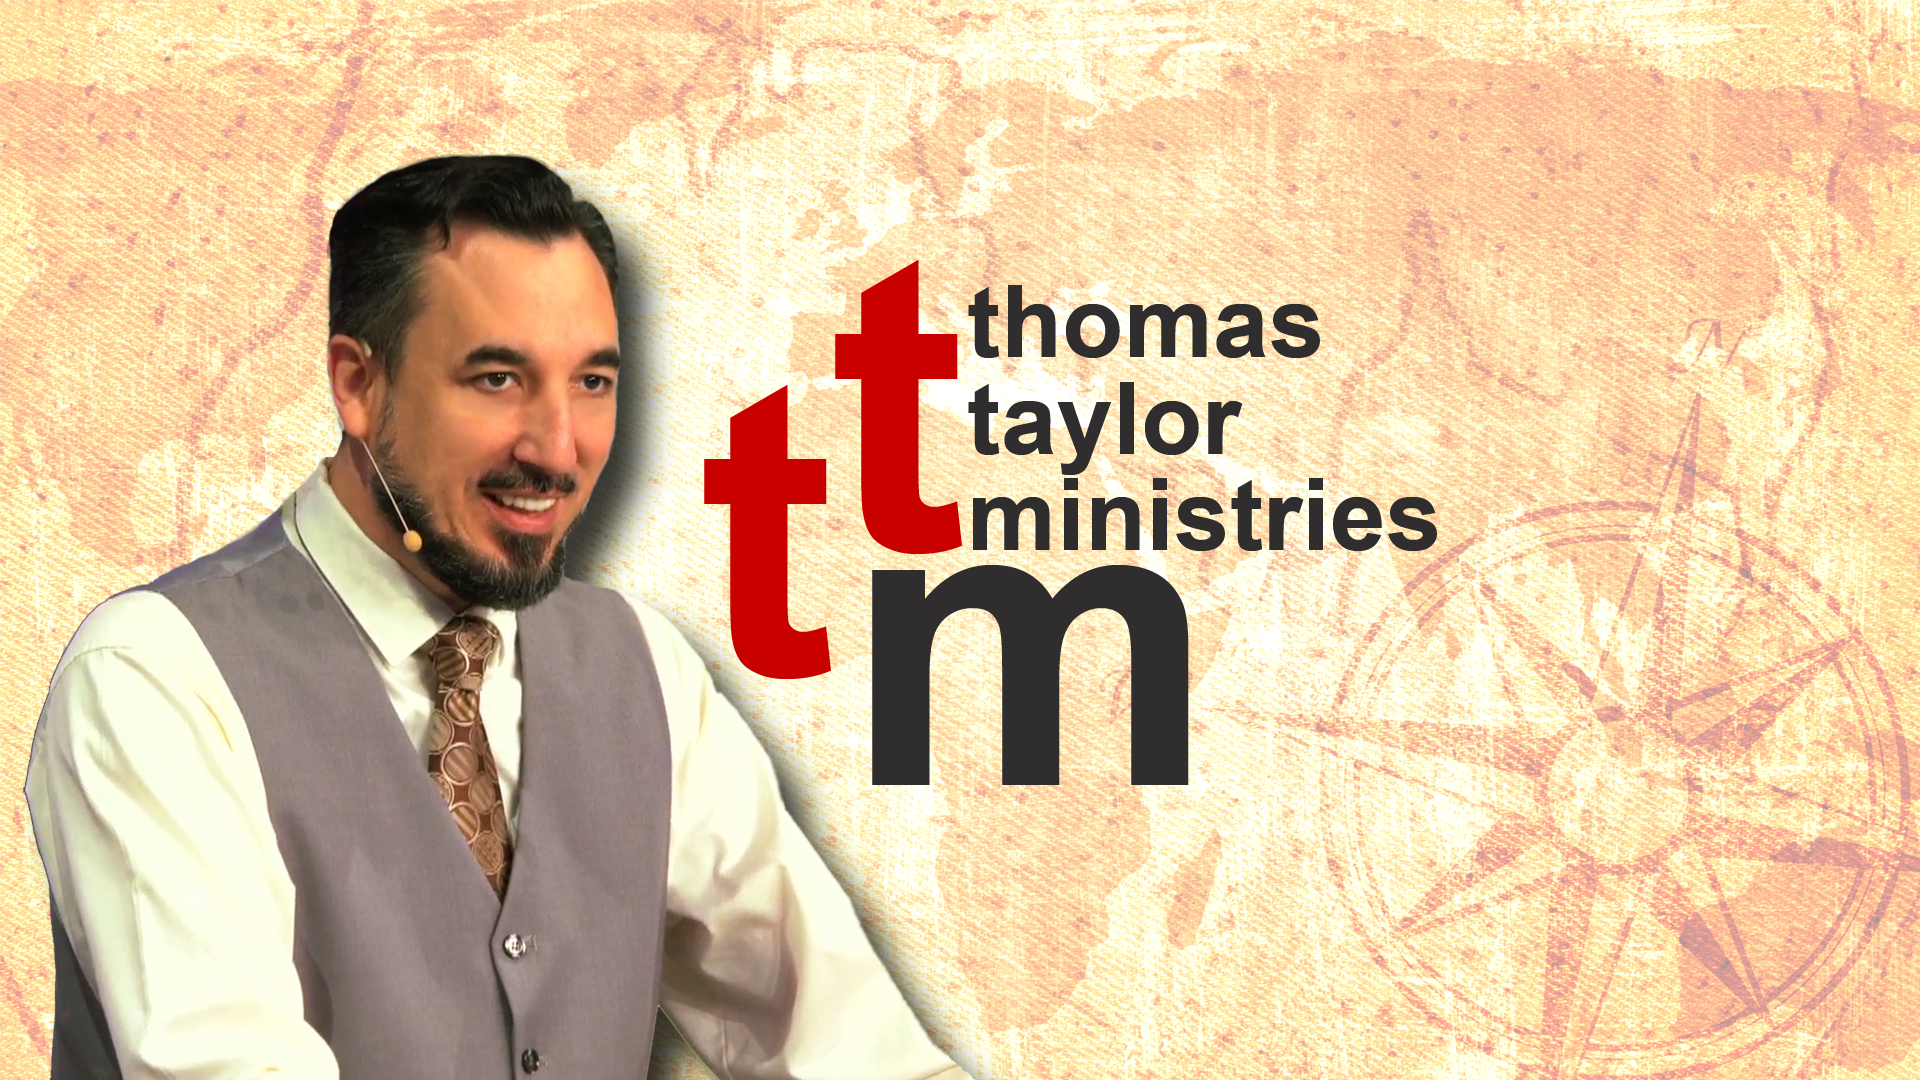 Thomas Taylor Ministries